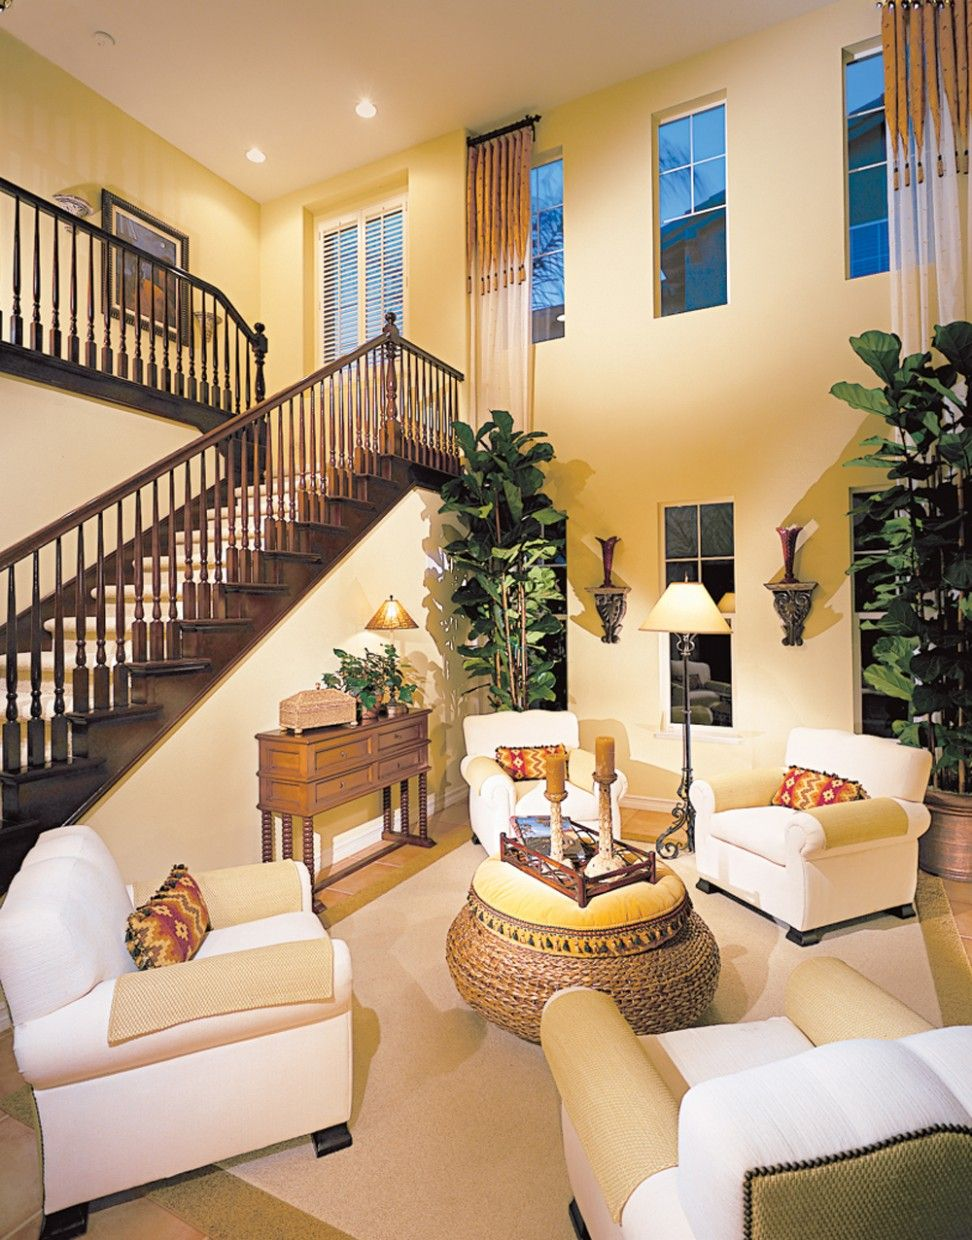 High Ceiling Vintage Yellow And White Home Interior Design With Beautiful  High Walls And Ceilings,